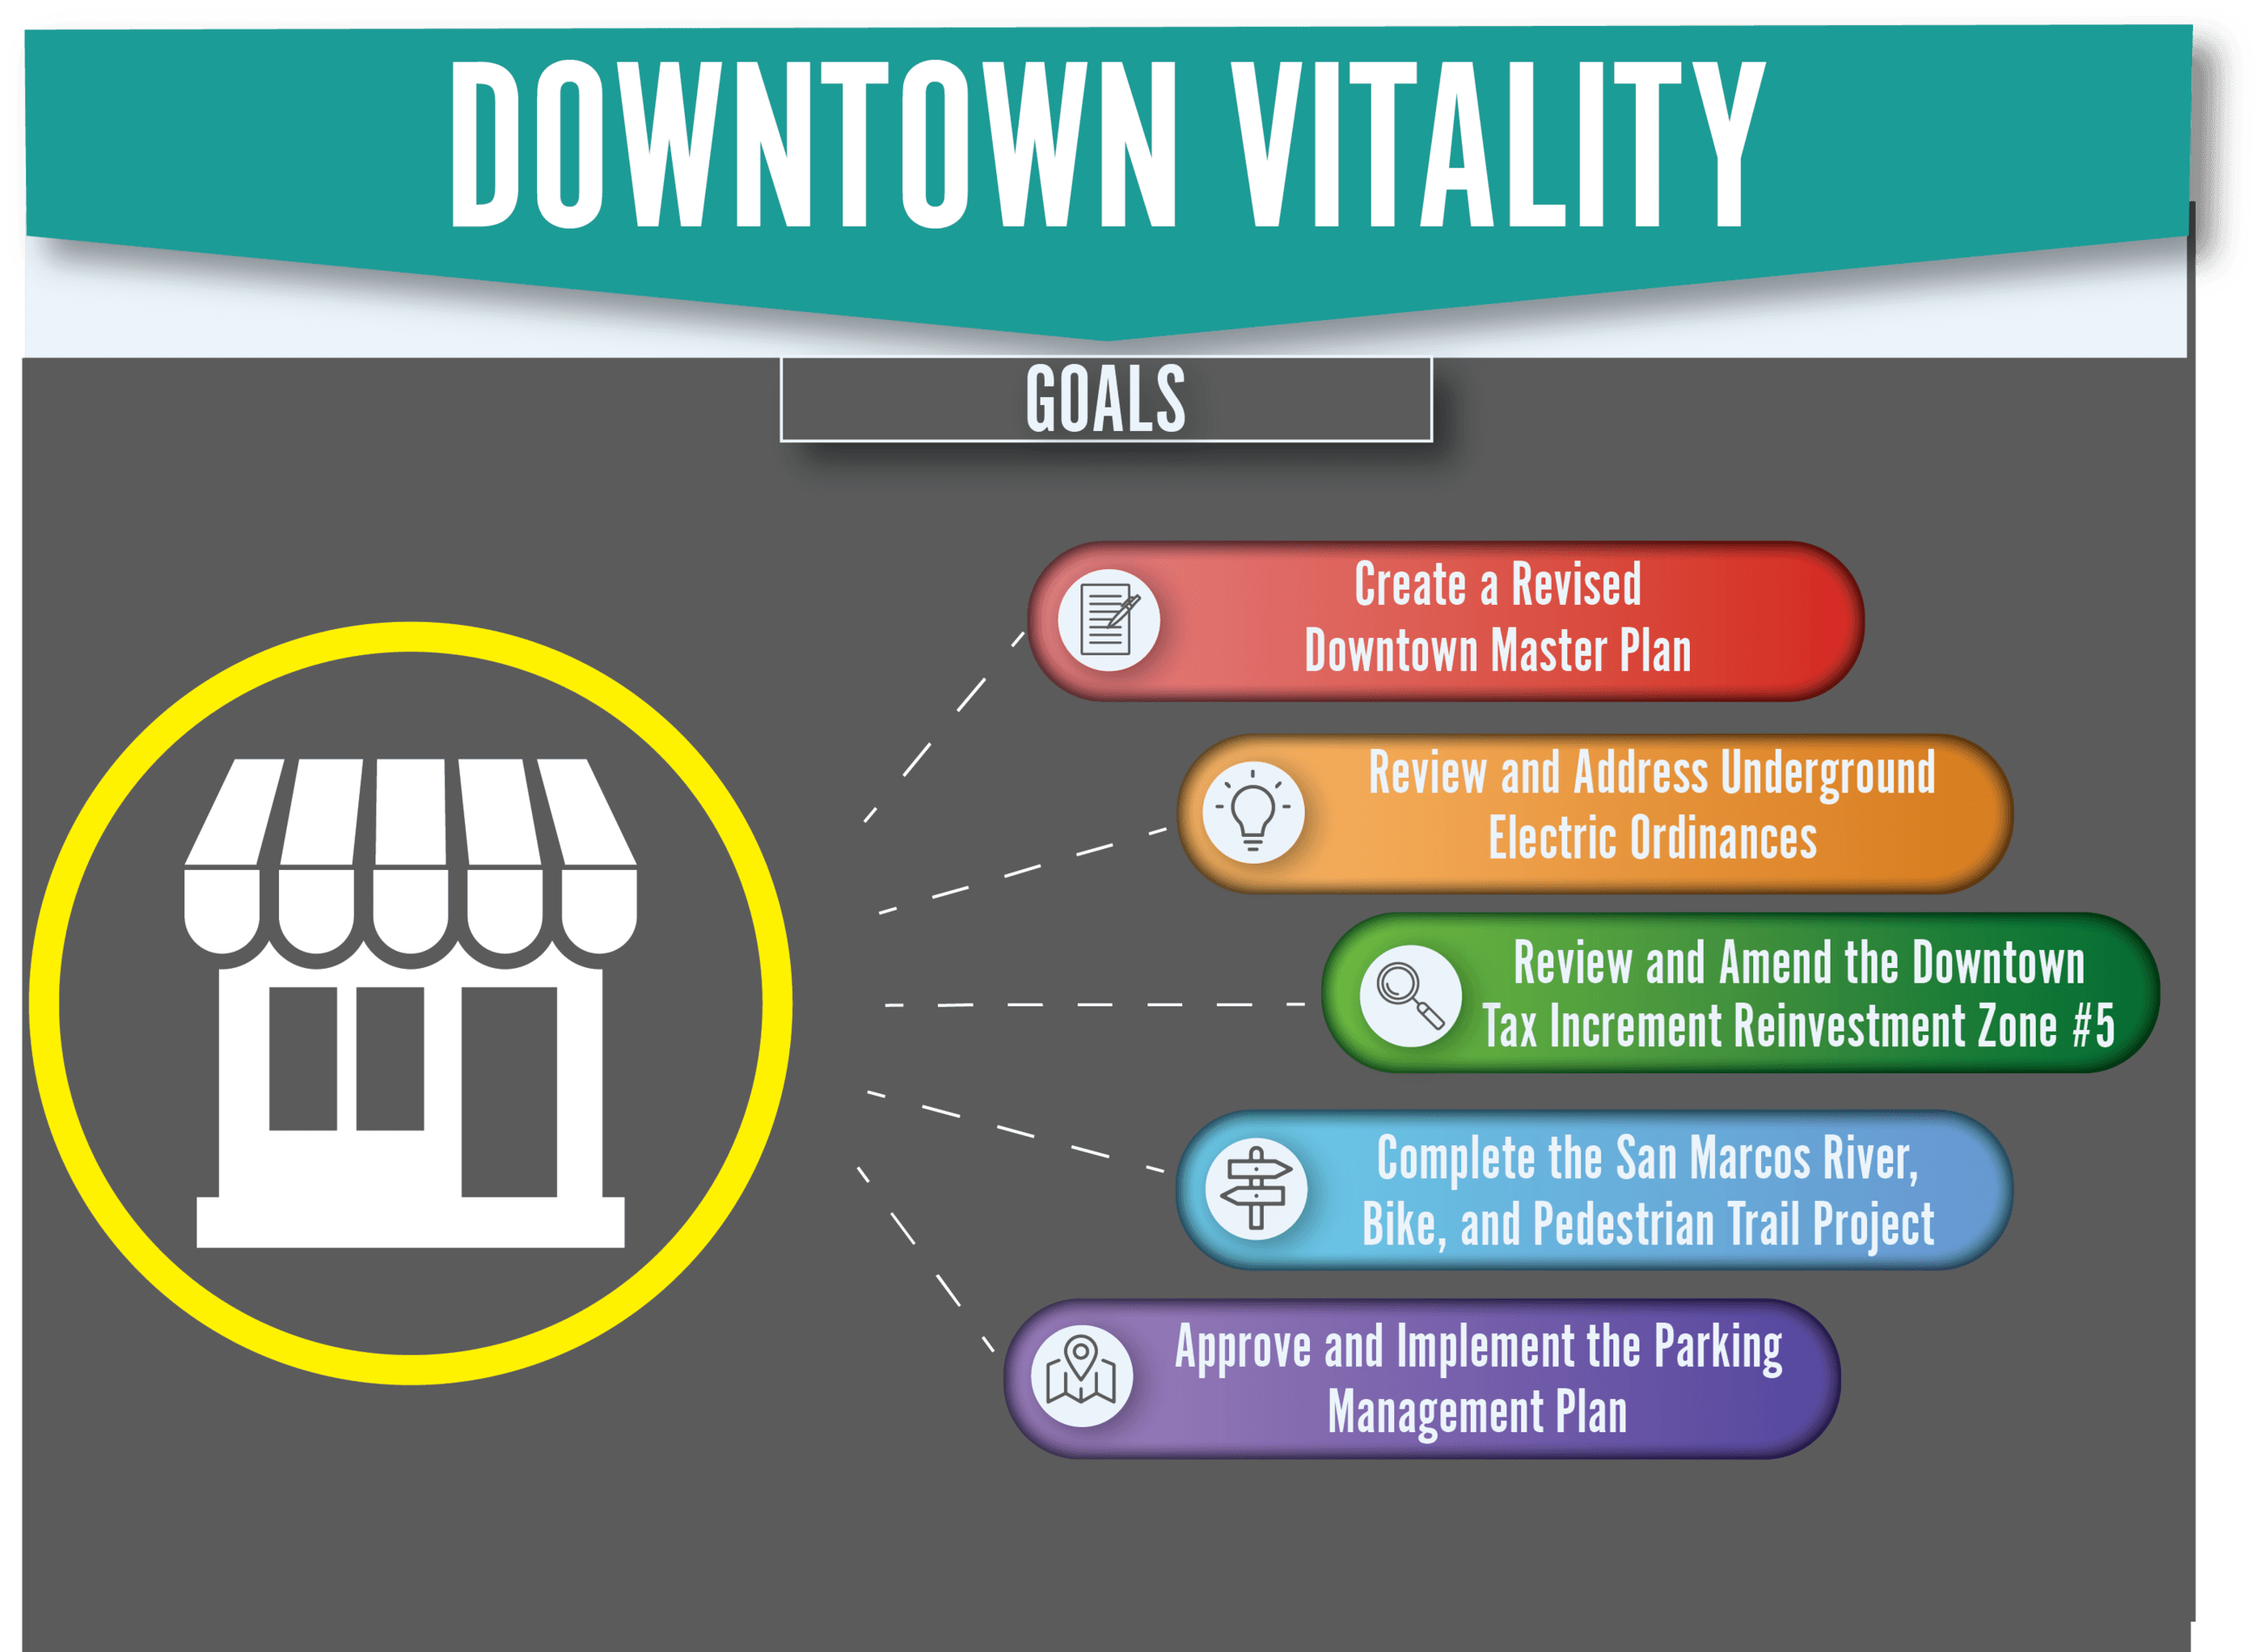 The Downtown Vitality Dashboard showing goals for the upcoming years